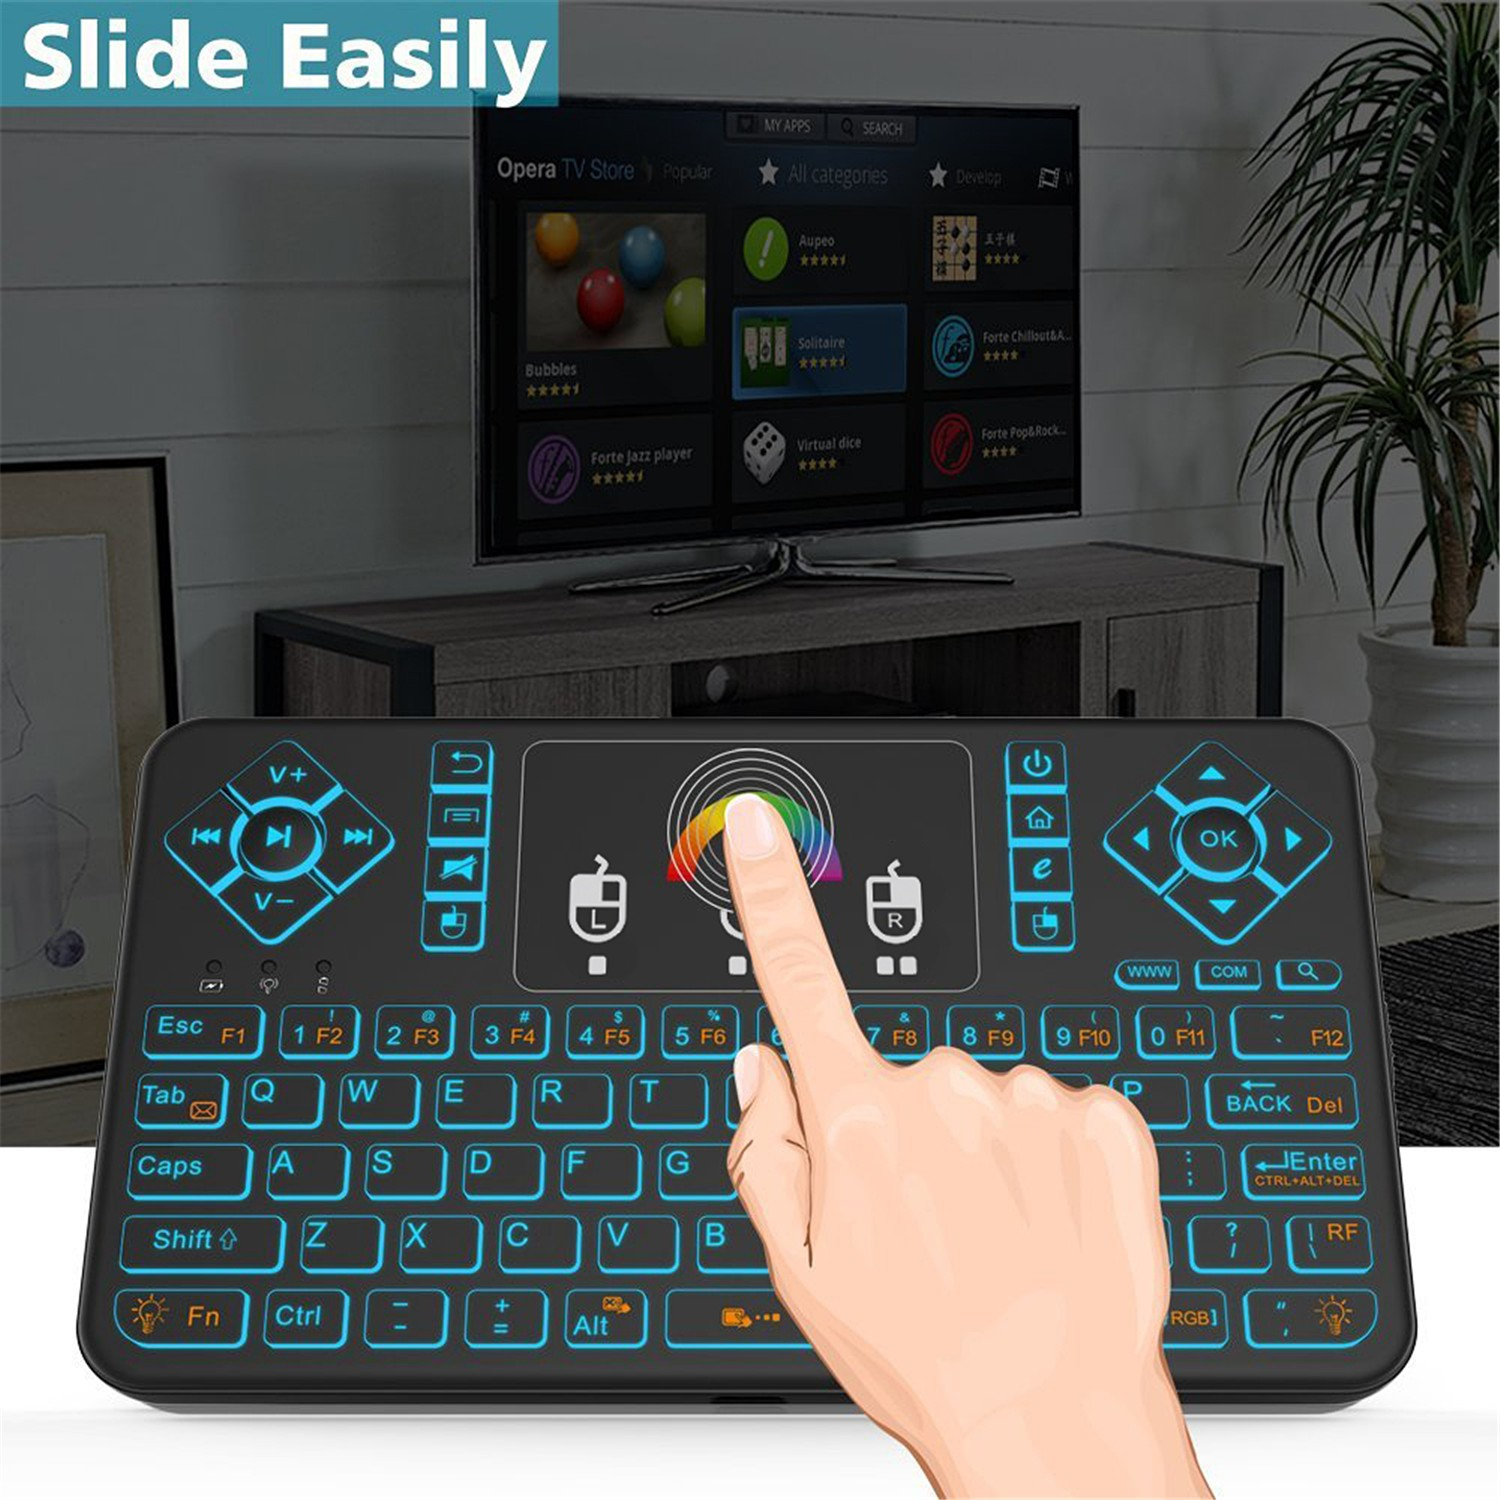 Q9 2.4G Air Mouse Mini Wireless Keyboard Remote Control  with USB Interface Receiver - Black